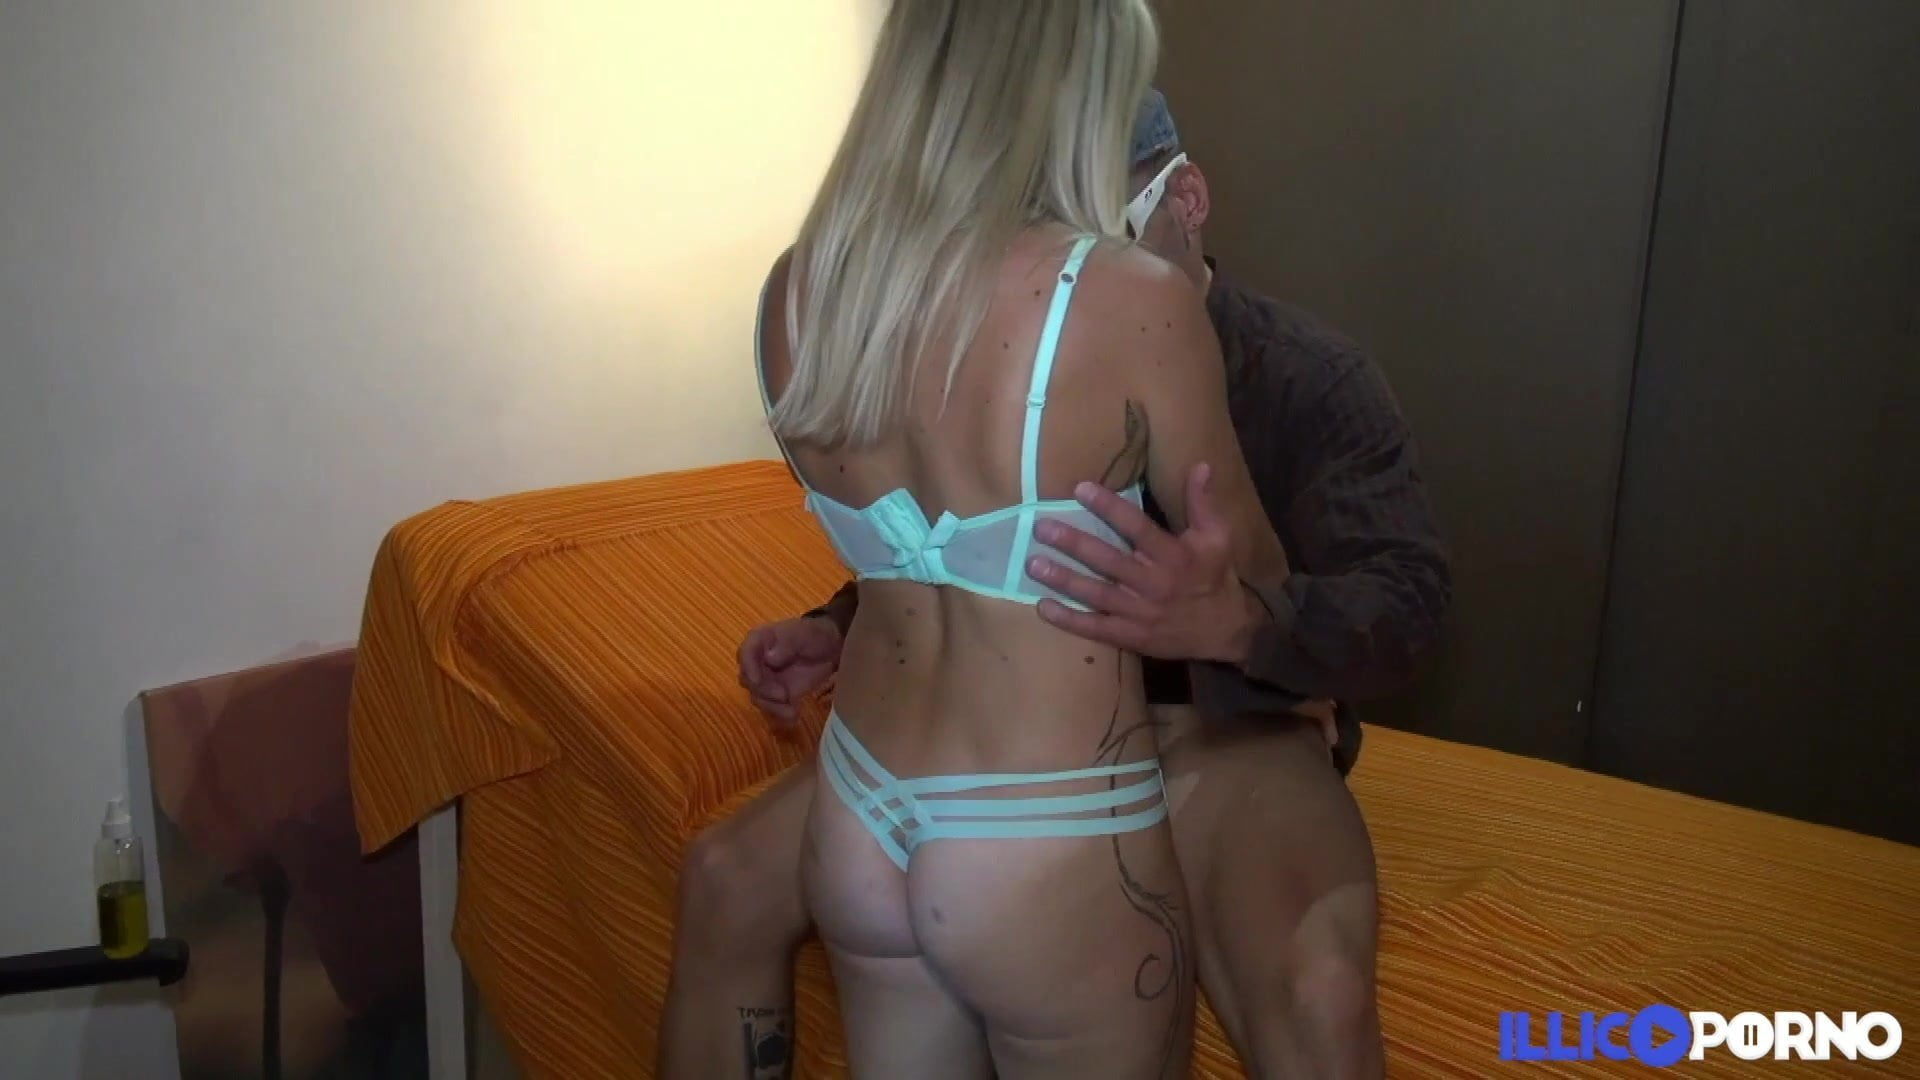 Not leave! milf video french 1er necessary phrase